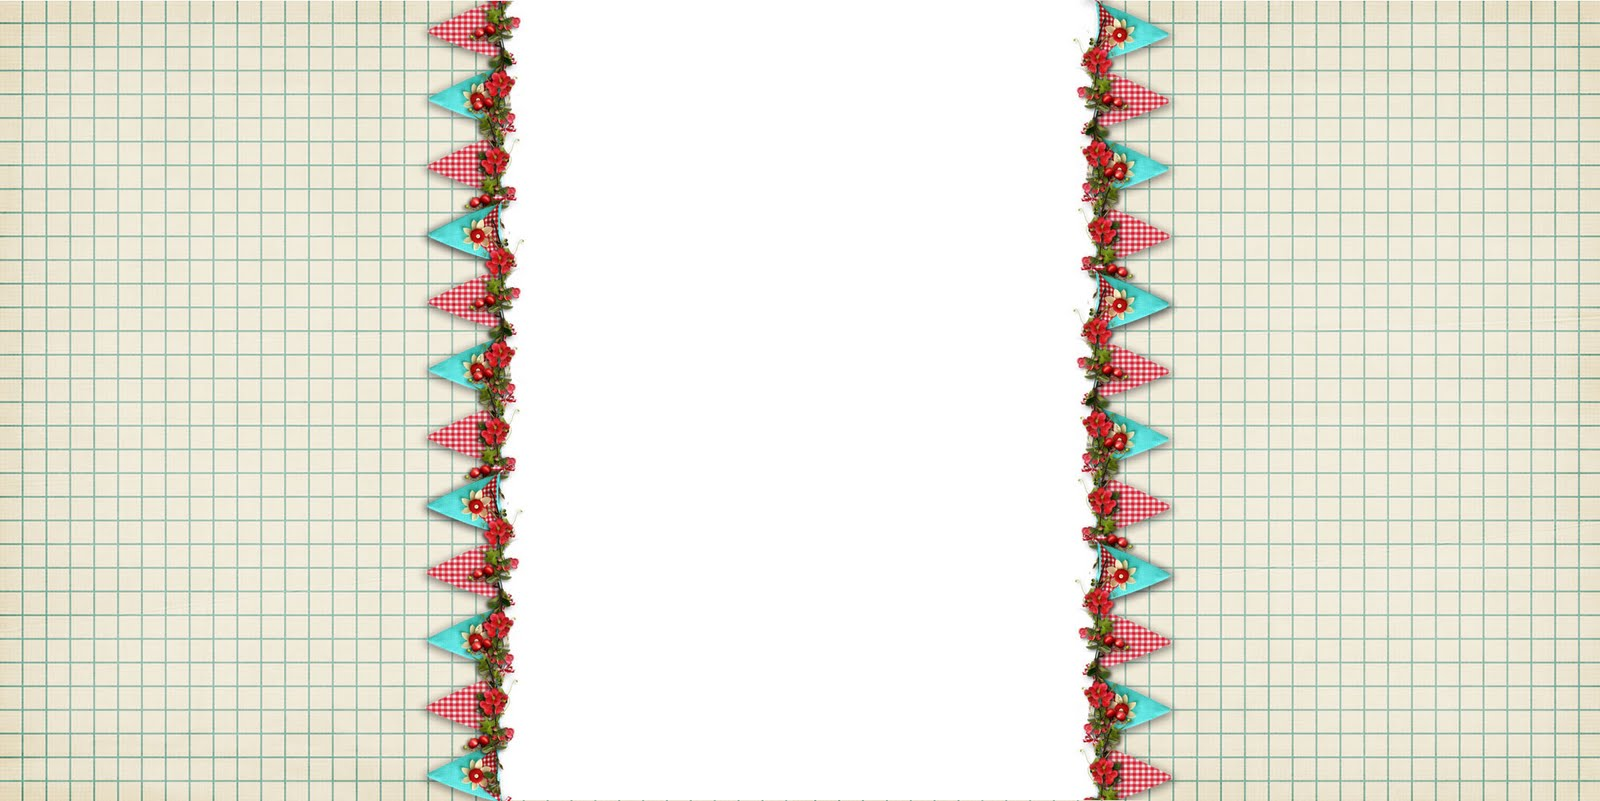 Designs by Tenille: Free Backgrounds